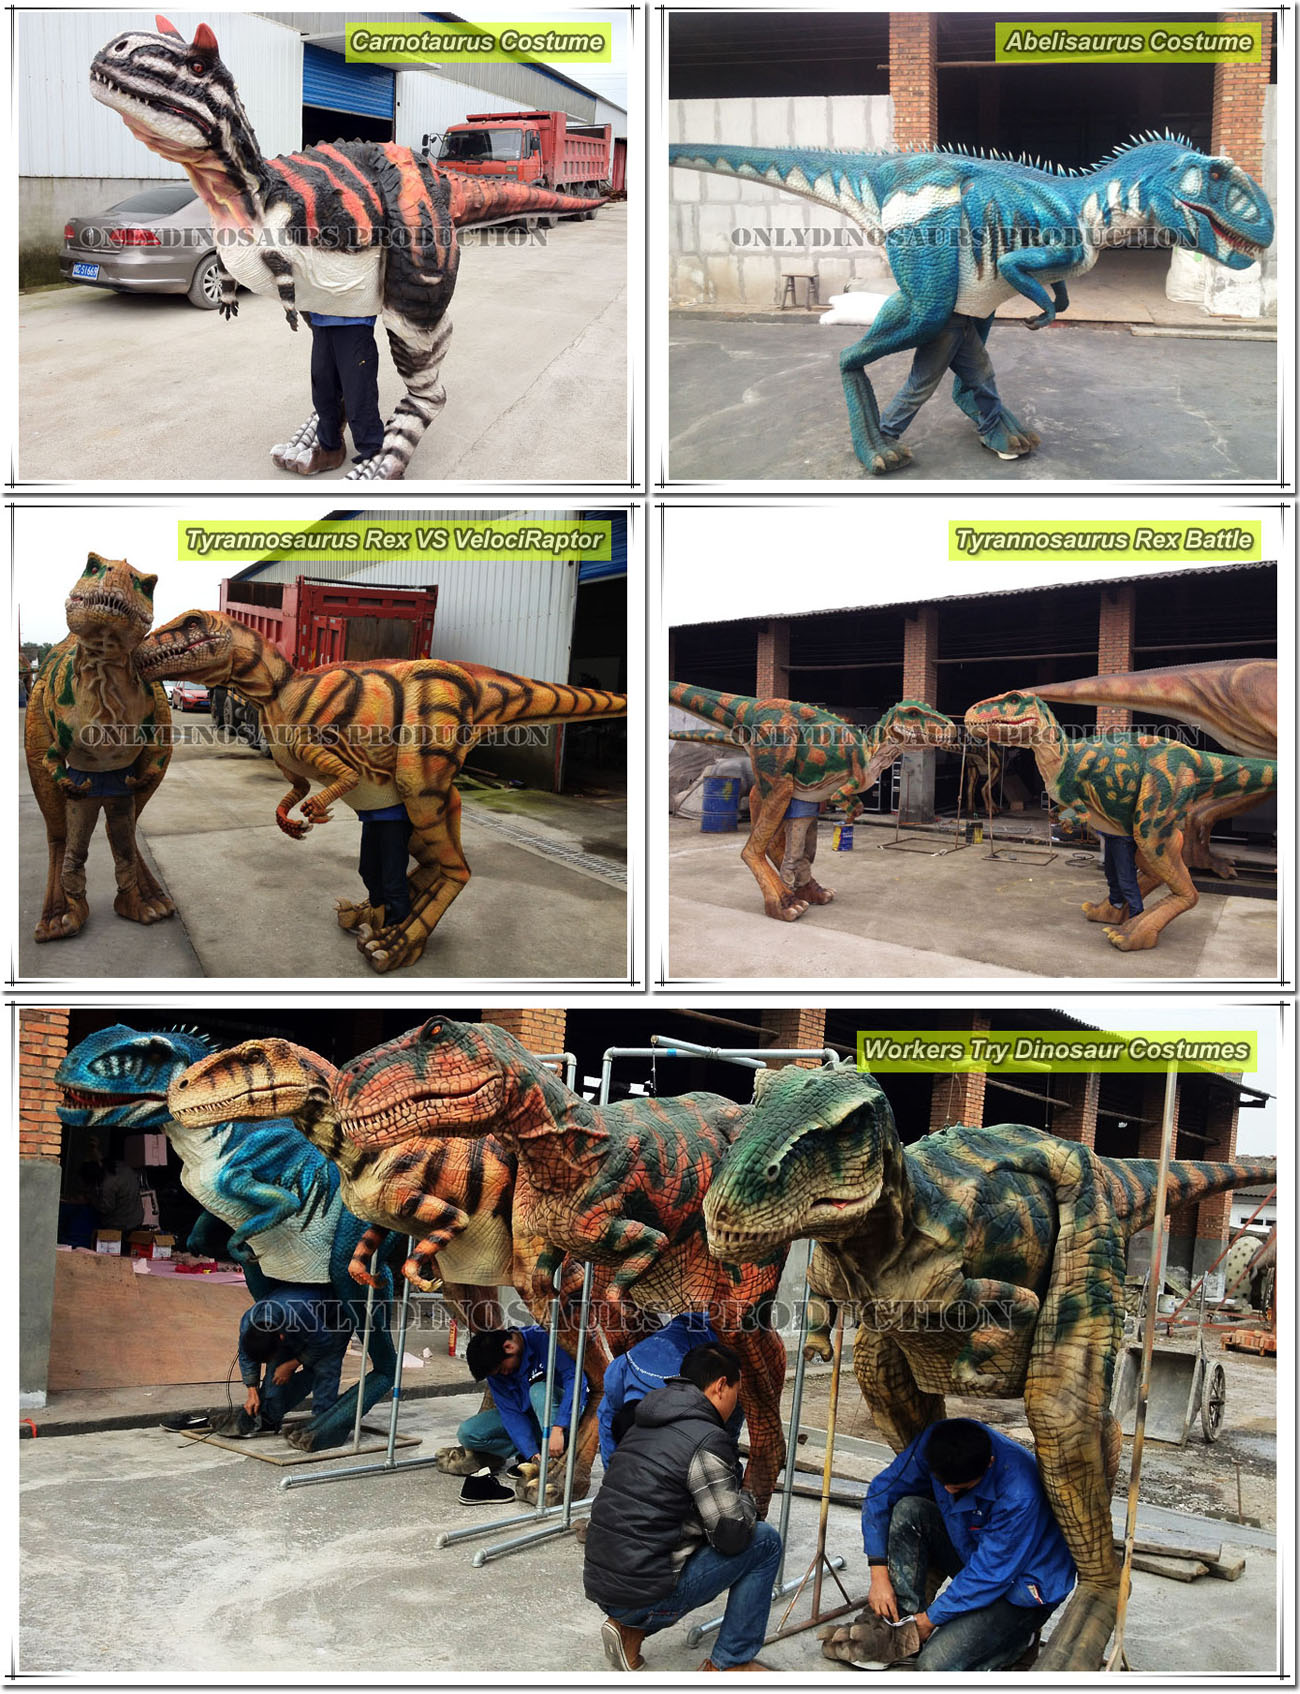 Try Dinosaur Costumes